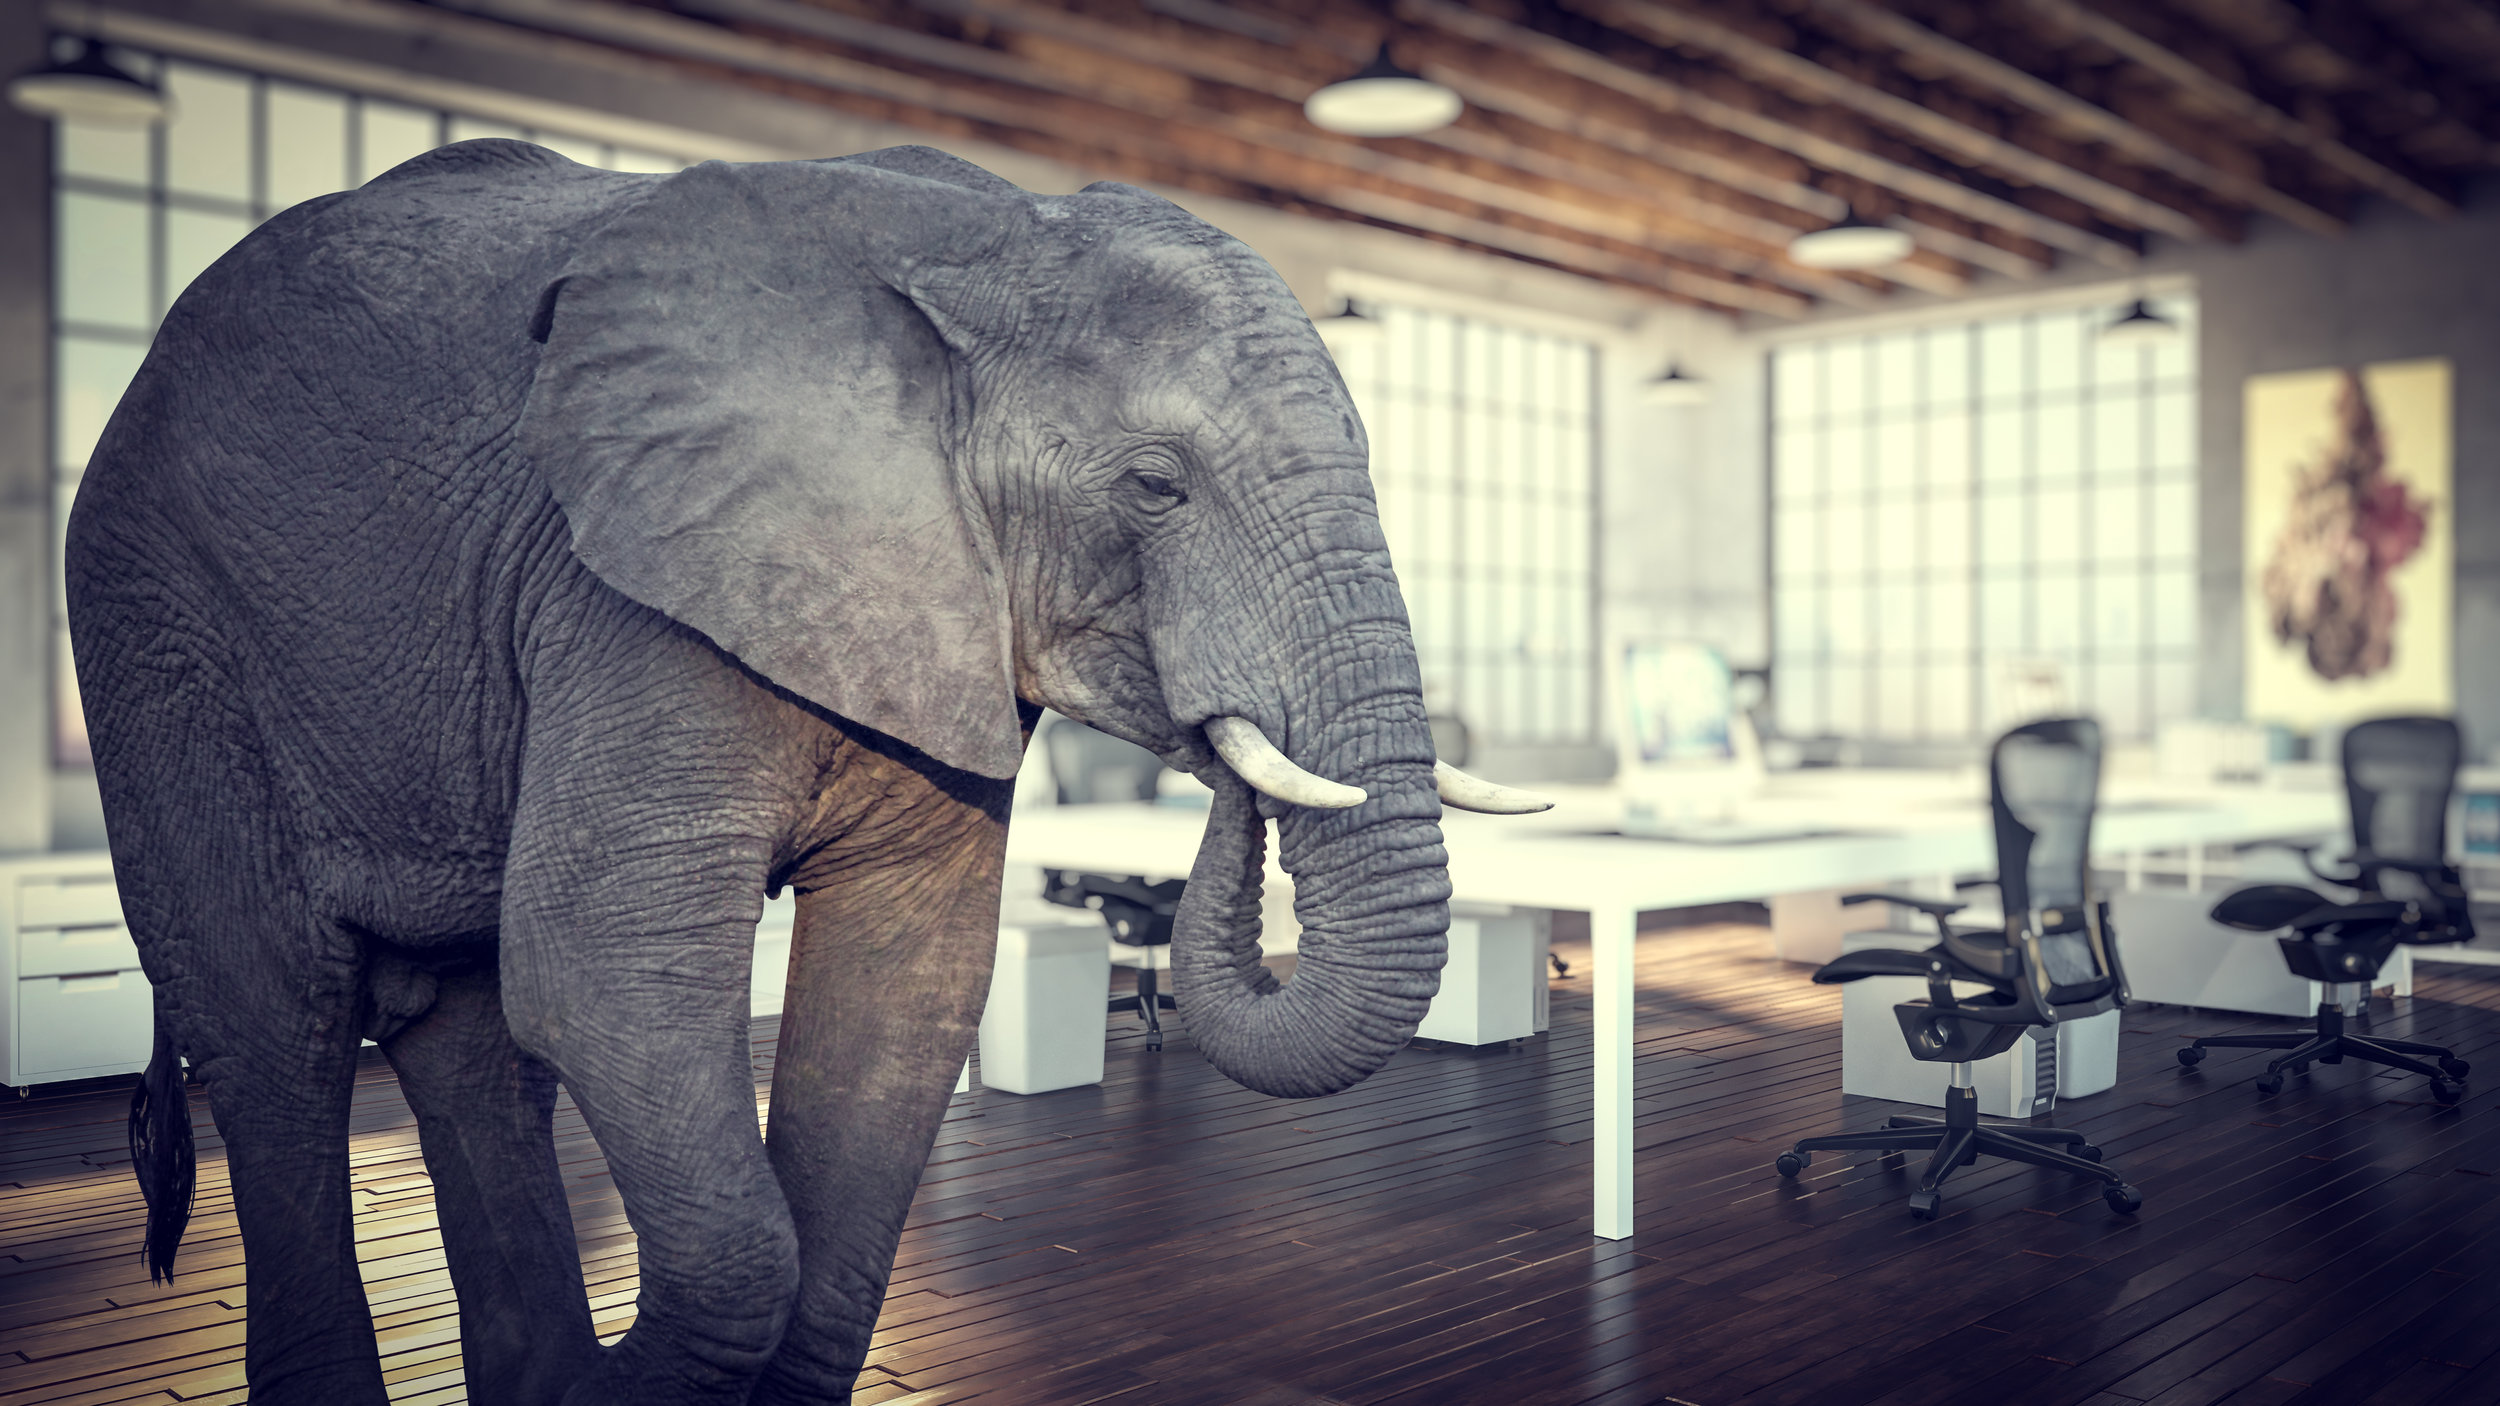 The Elephant in the room is CLIMATE CHANGE, but we still haven't deal with the probable  consequences for our entire way of lie.